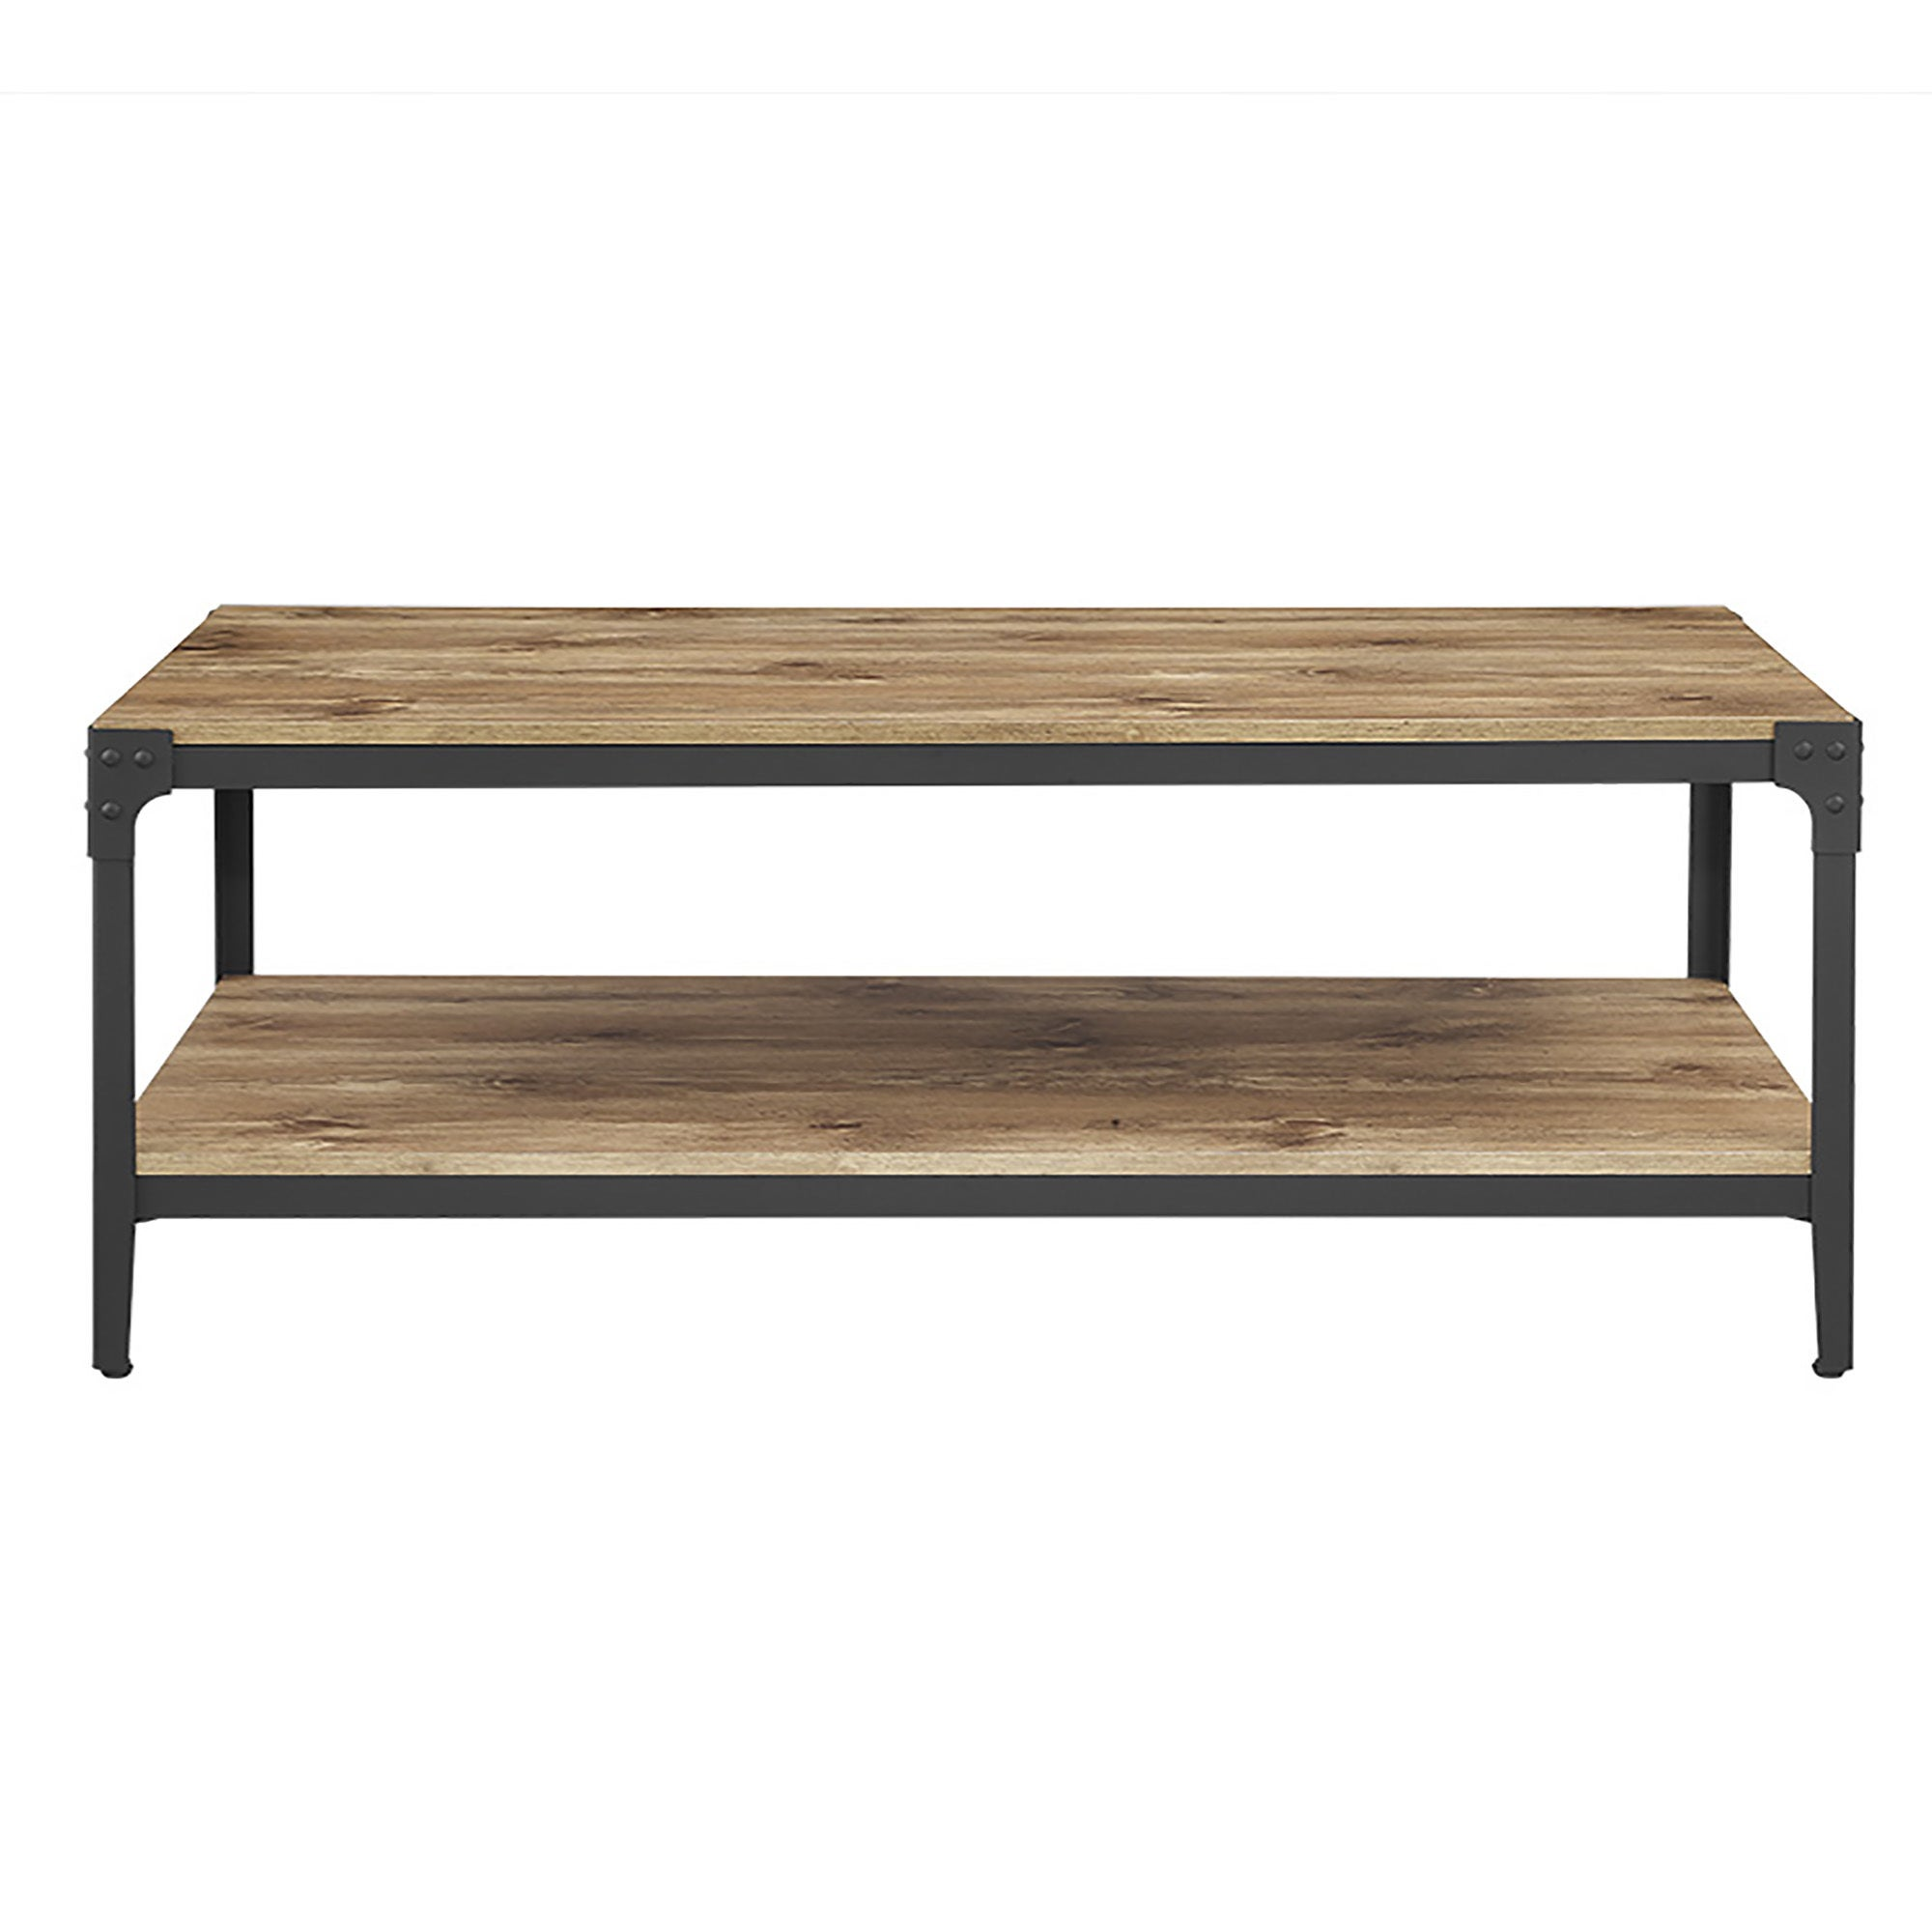 48 inch Rustic Barnwood Angle Iron Coffee Table Free Shipping